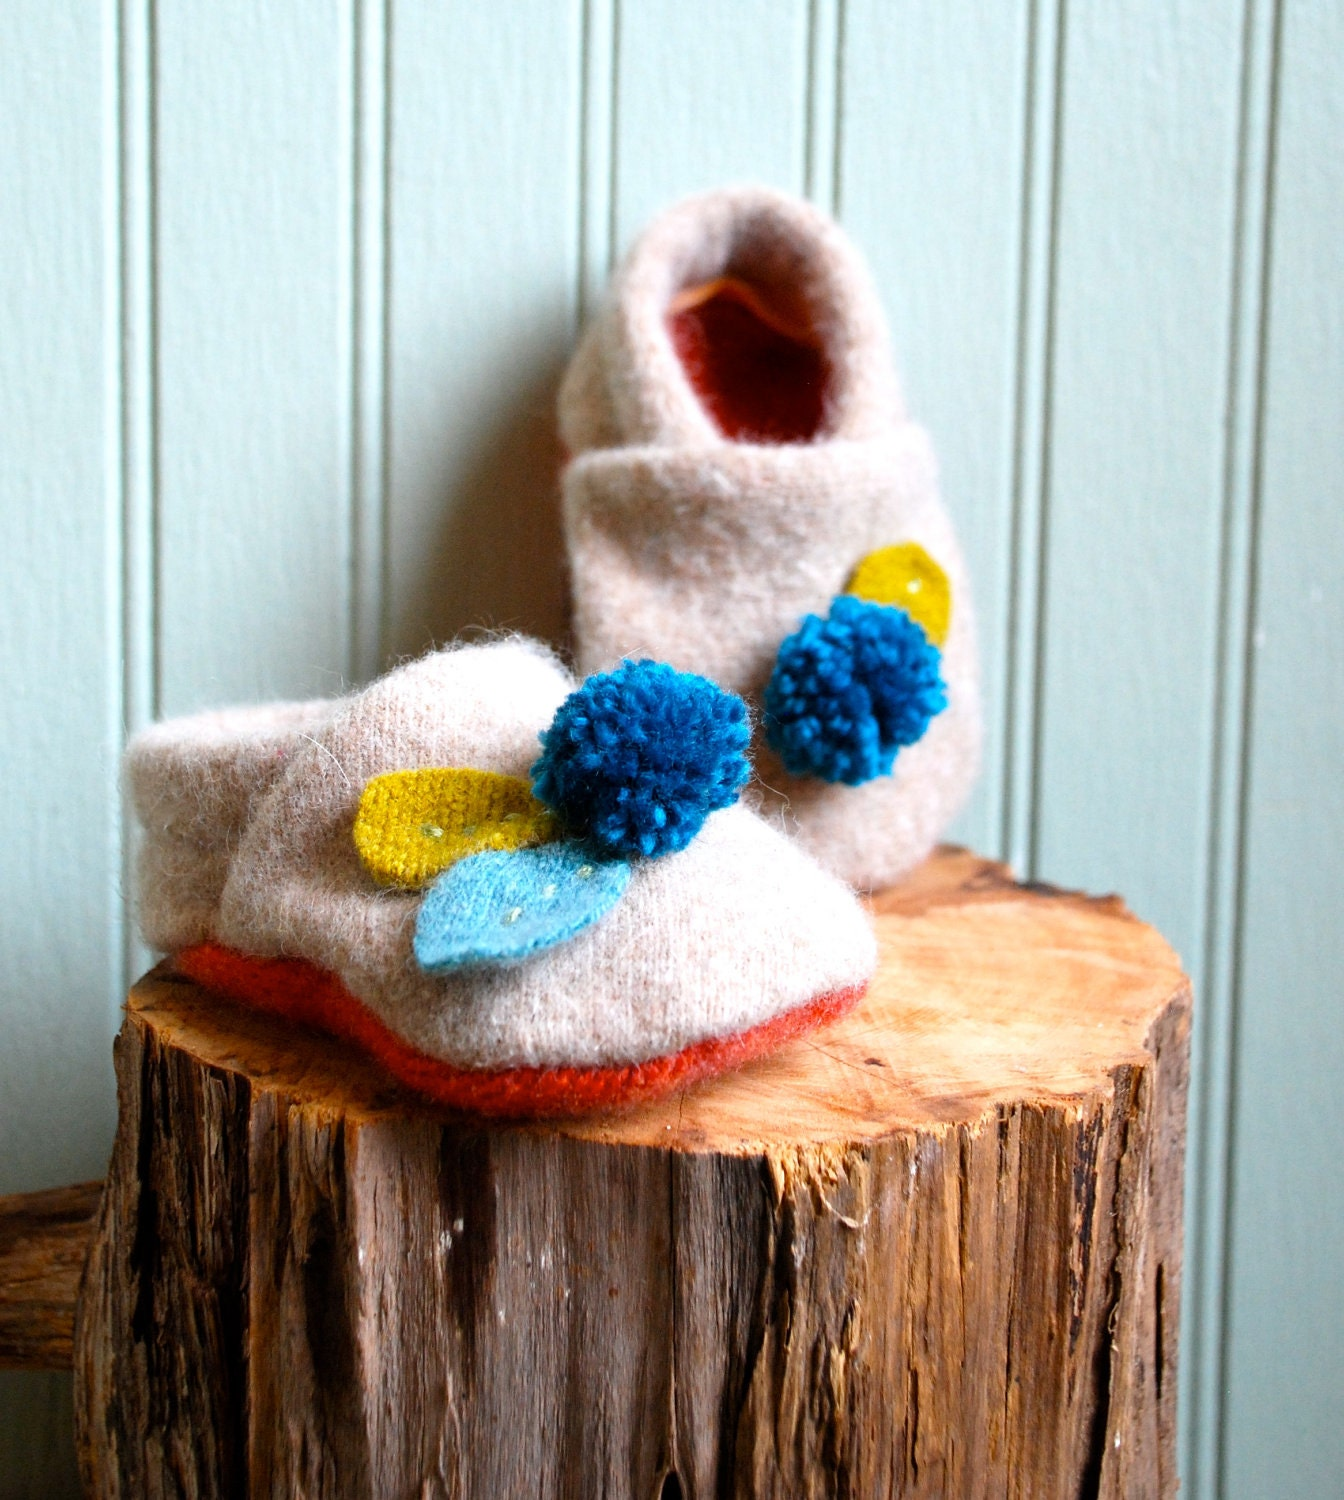 Made to Order///Pompom Baby Booties made from Reclaimed Lambswool/// 0-9 month size